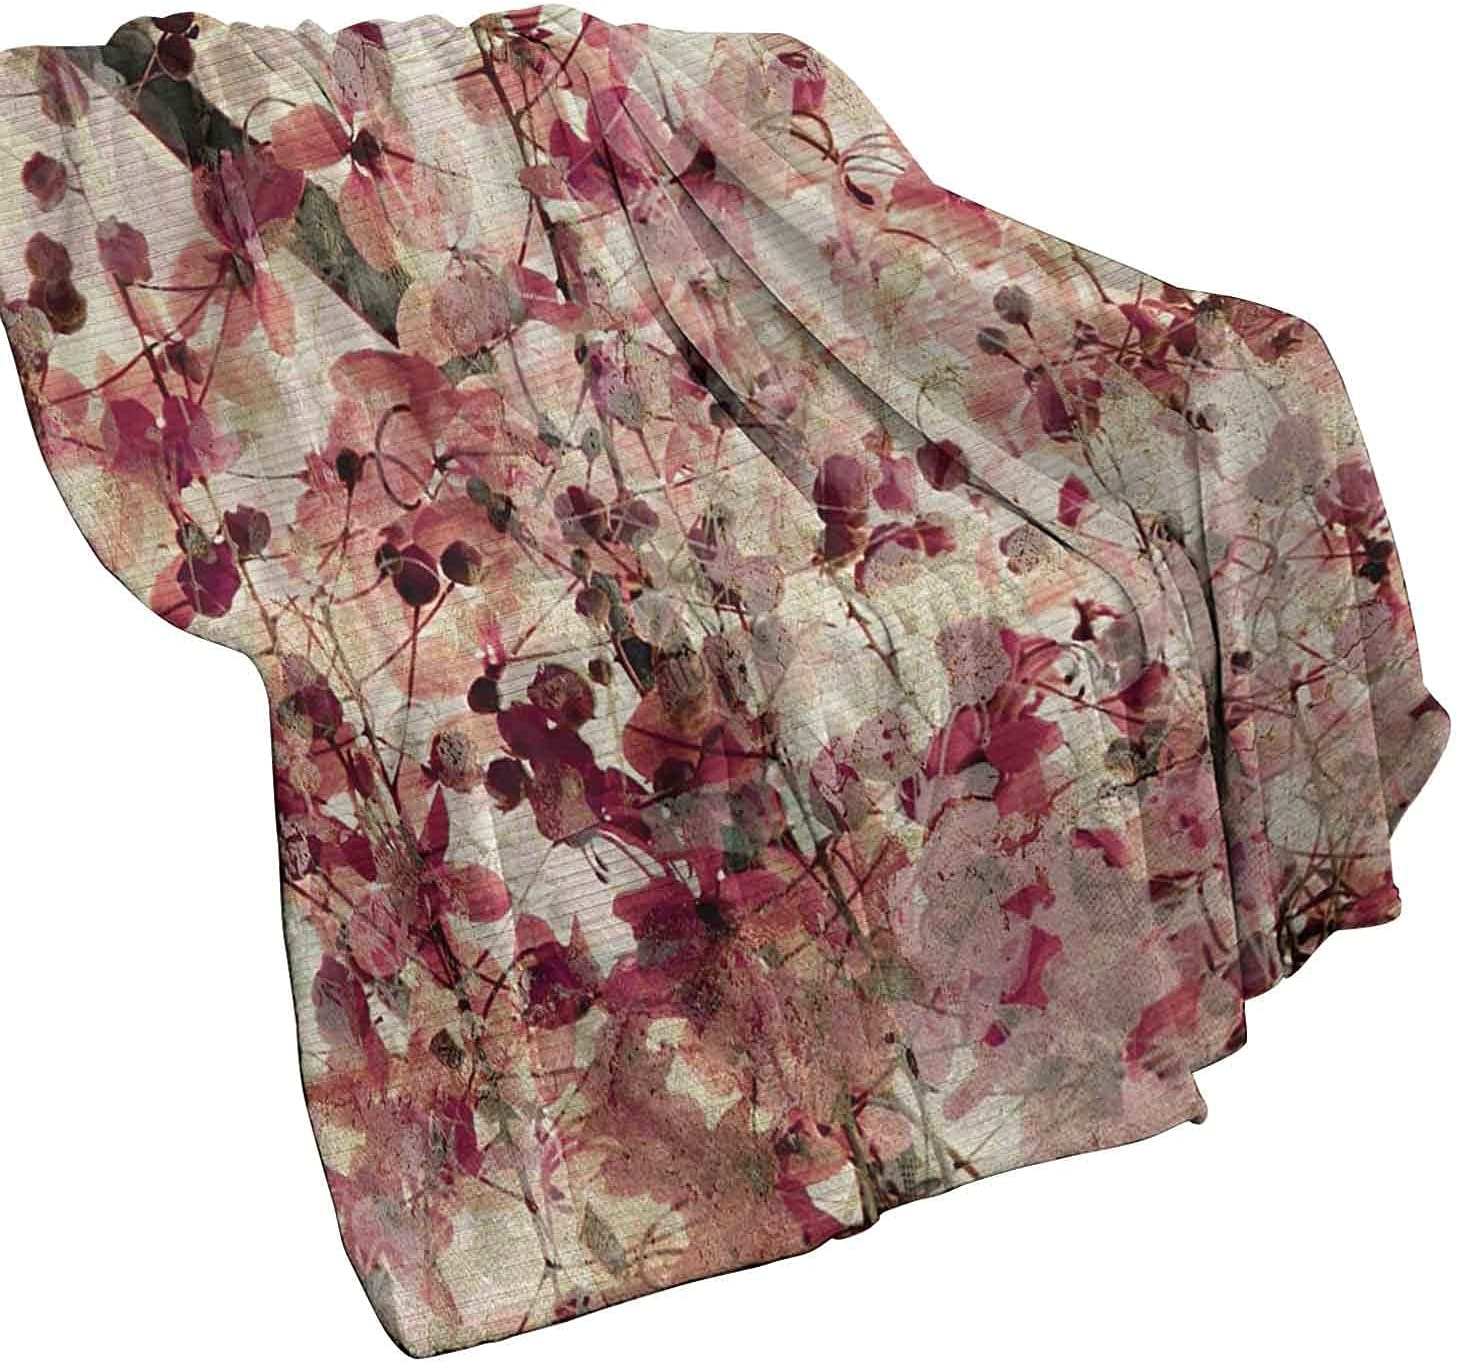 famous Max 87% OFF Antique Commercial Grade Printed Blanket Effect B Cherry Grungy